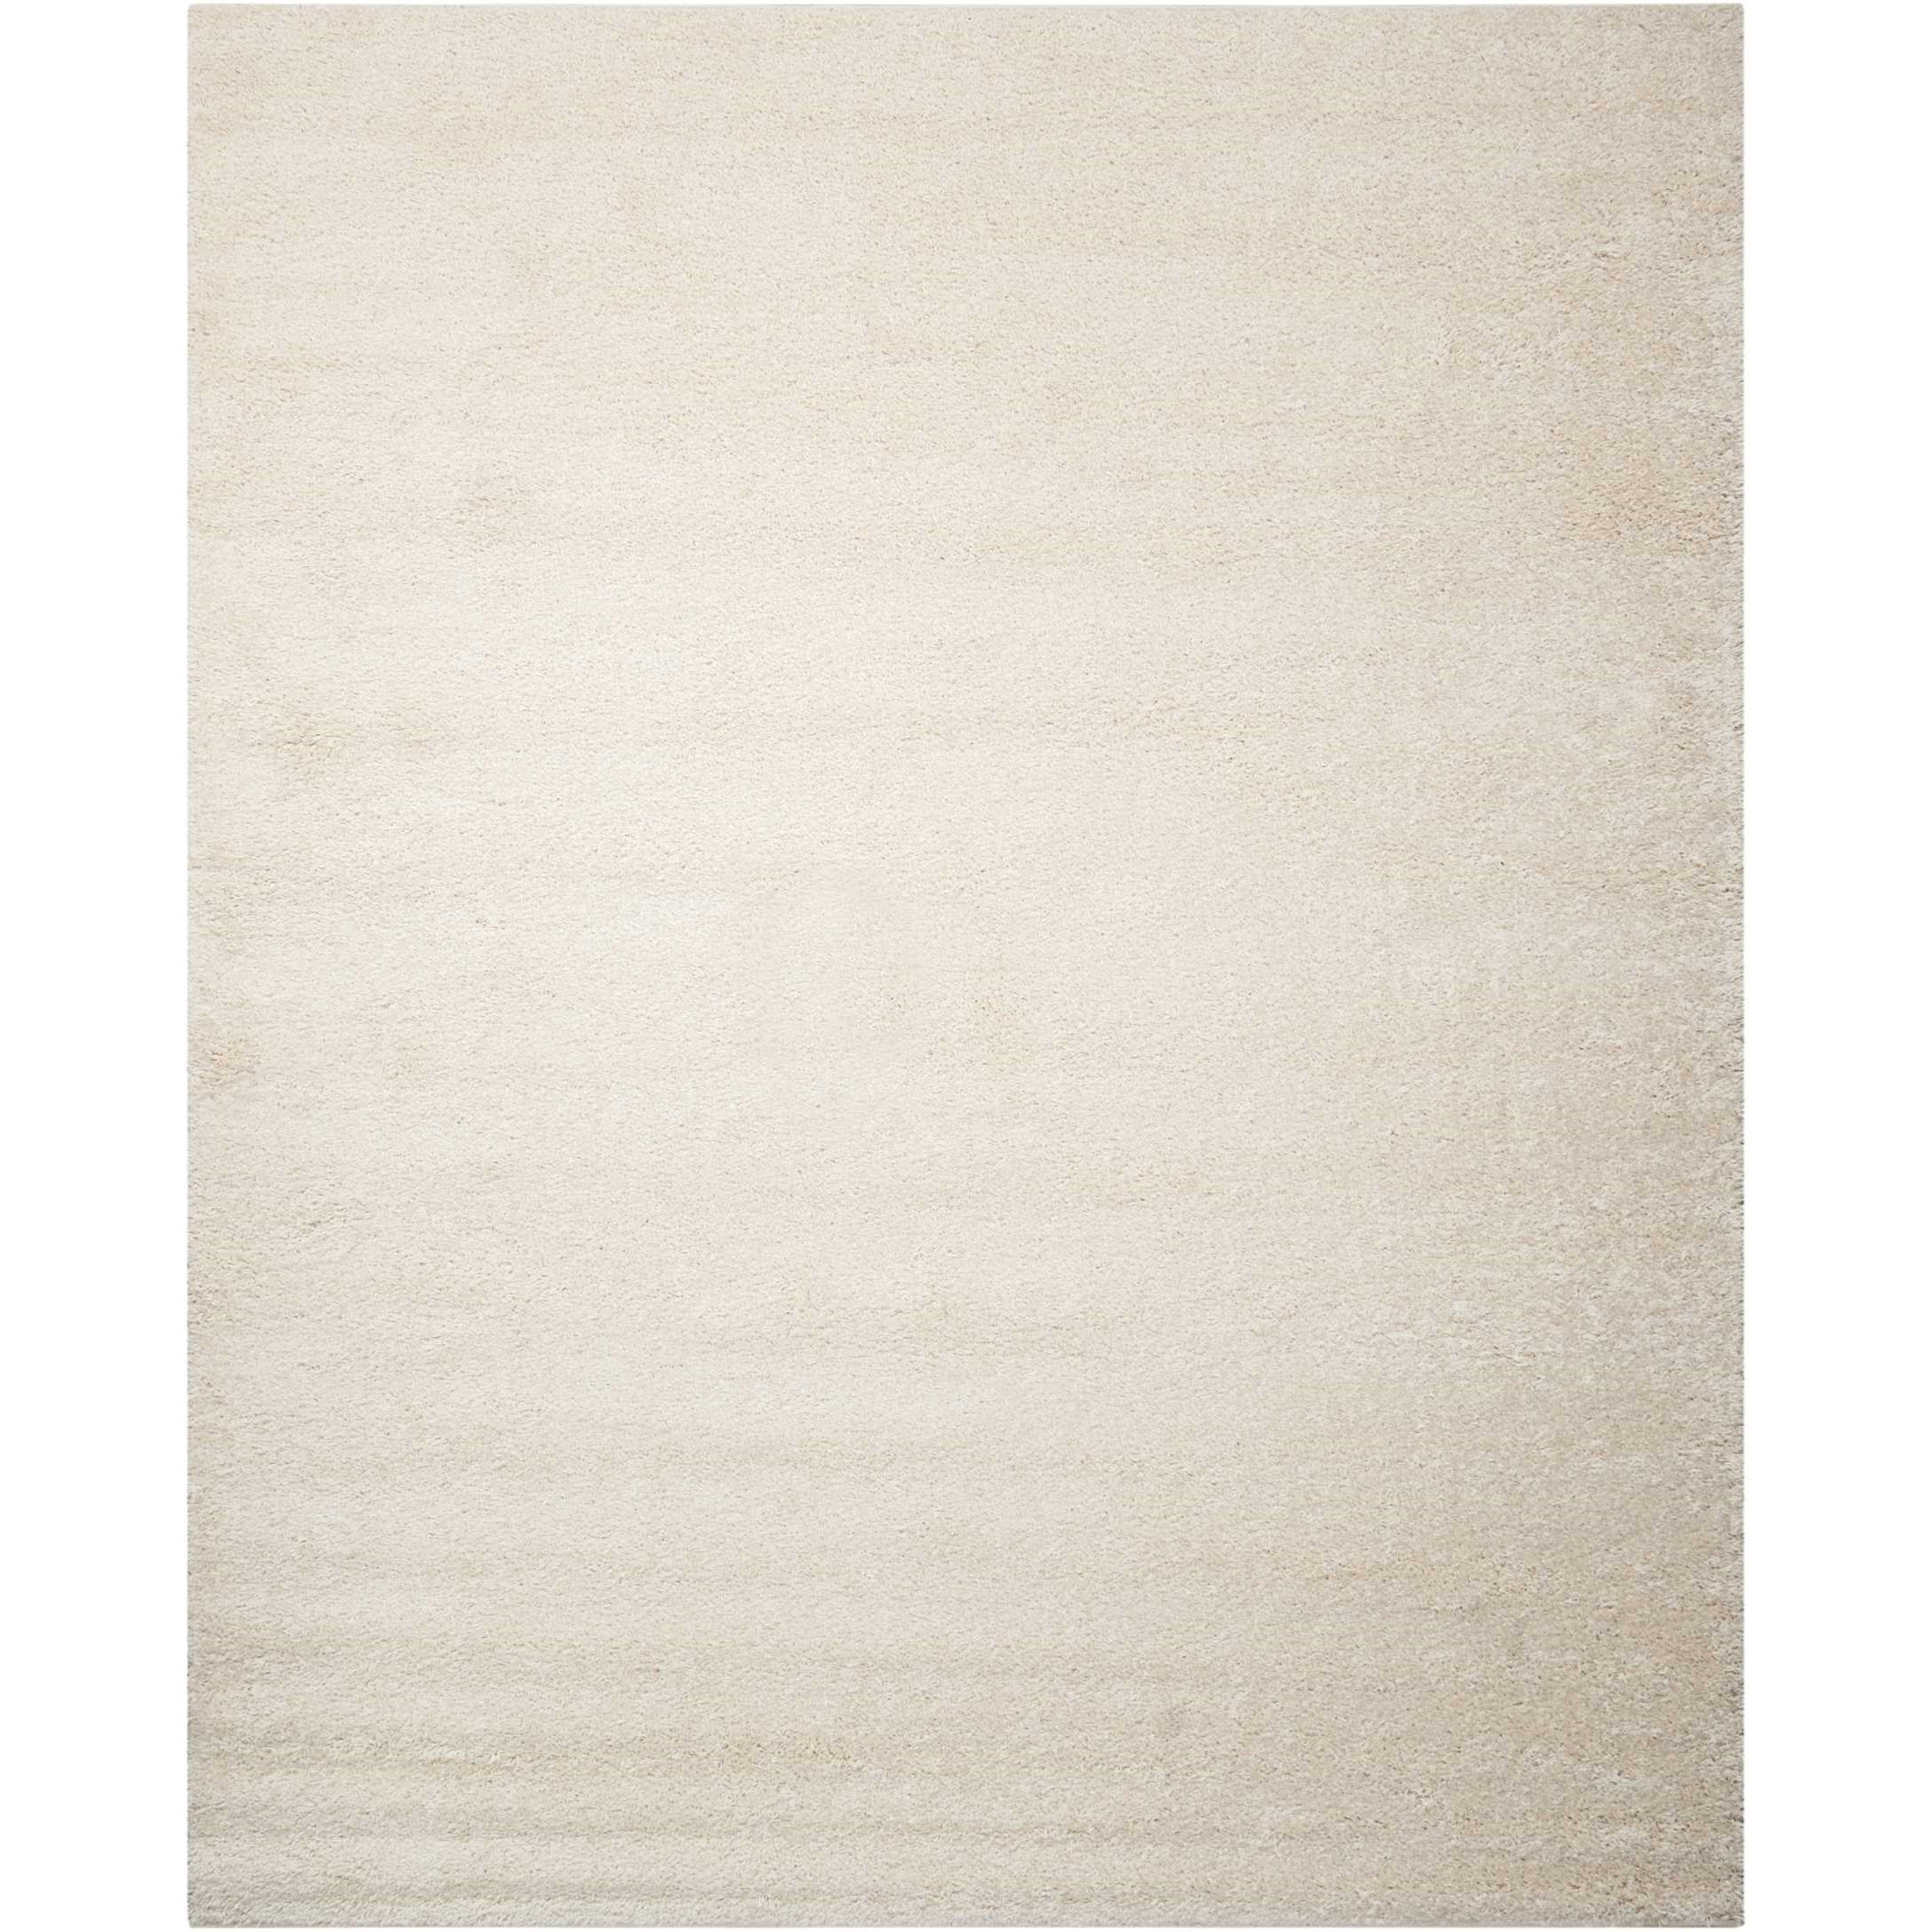 """Bonita 8'2"""" x 10' White Rectangle Rug by Nourison at Home Collections Furniture"""